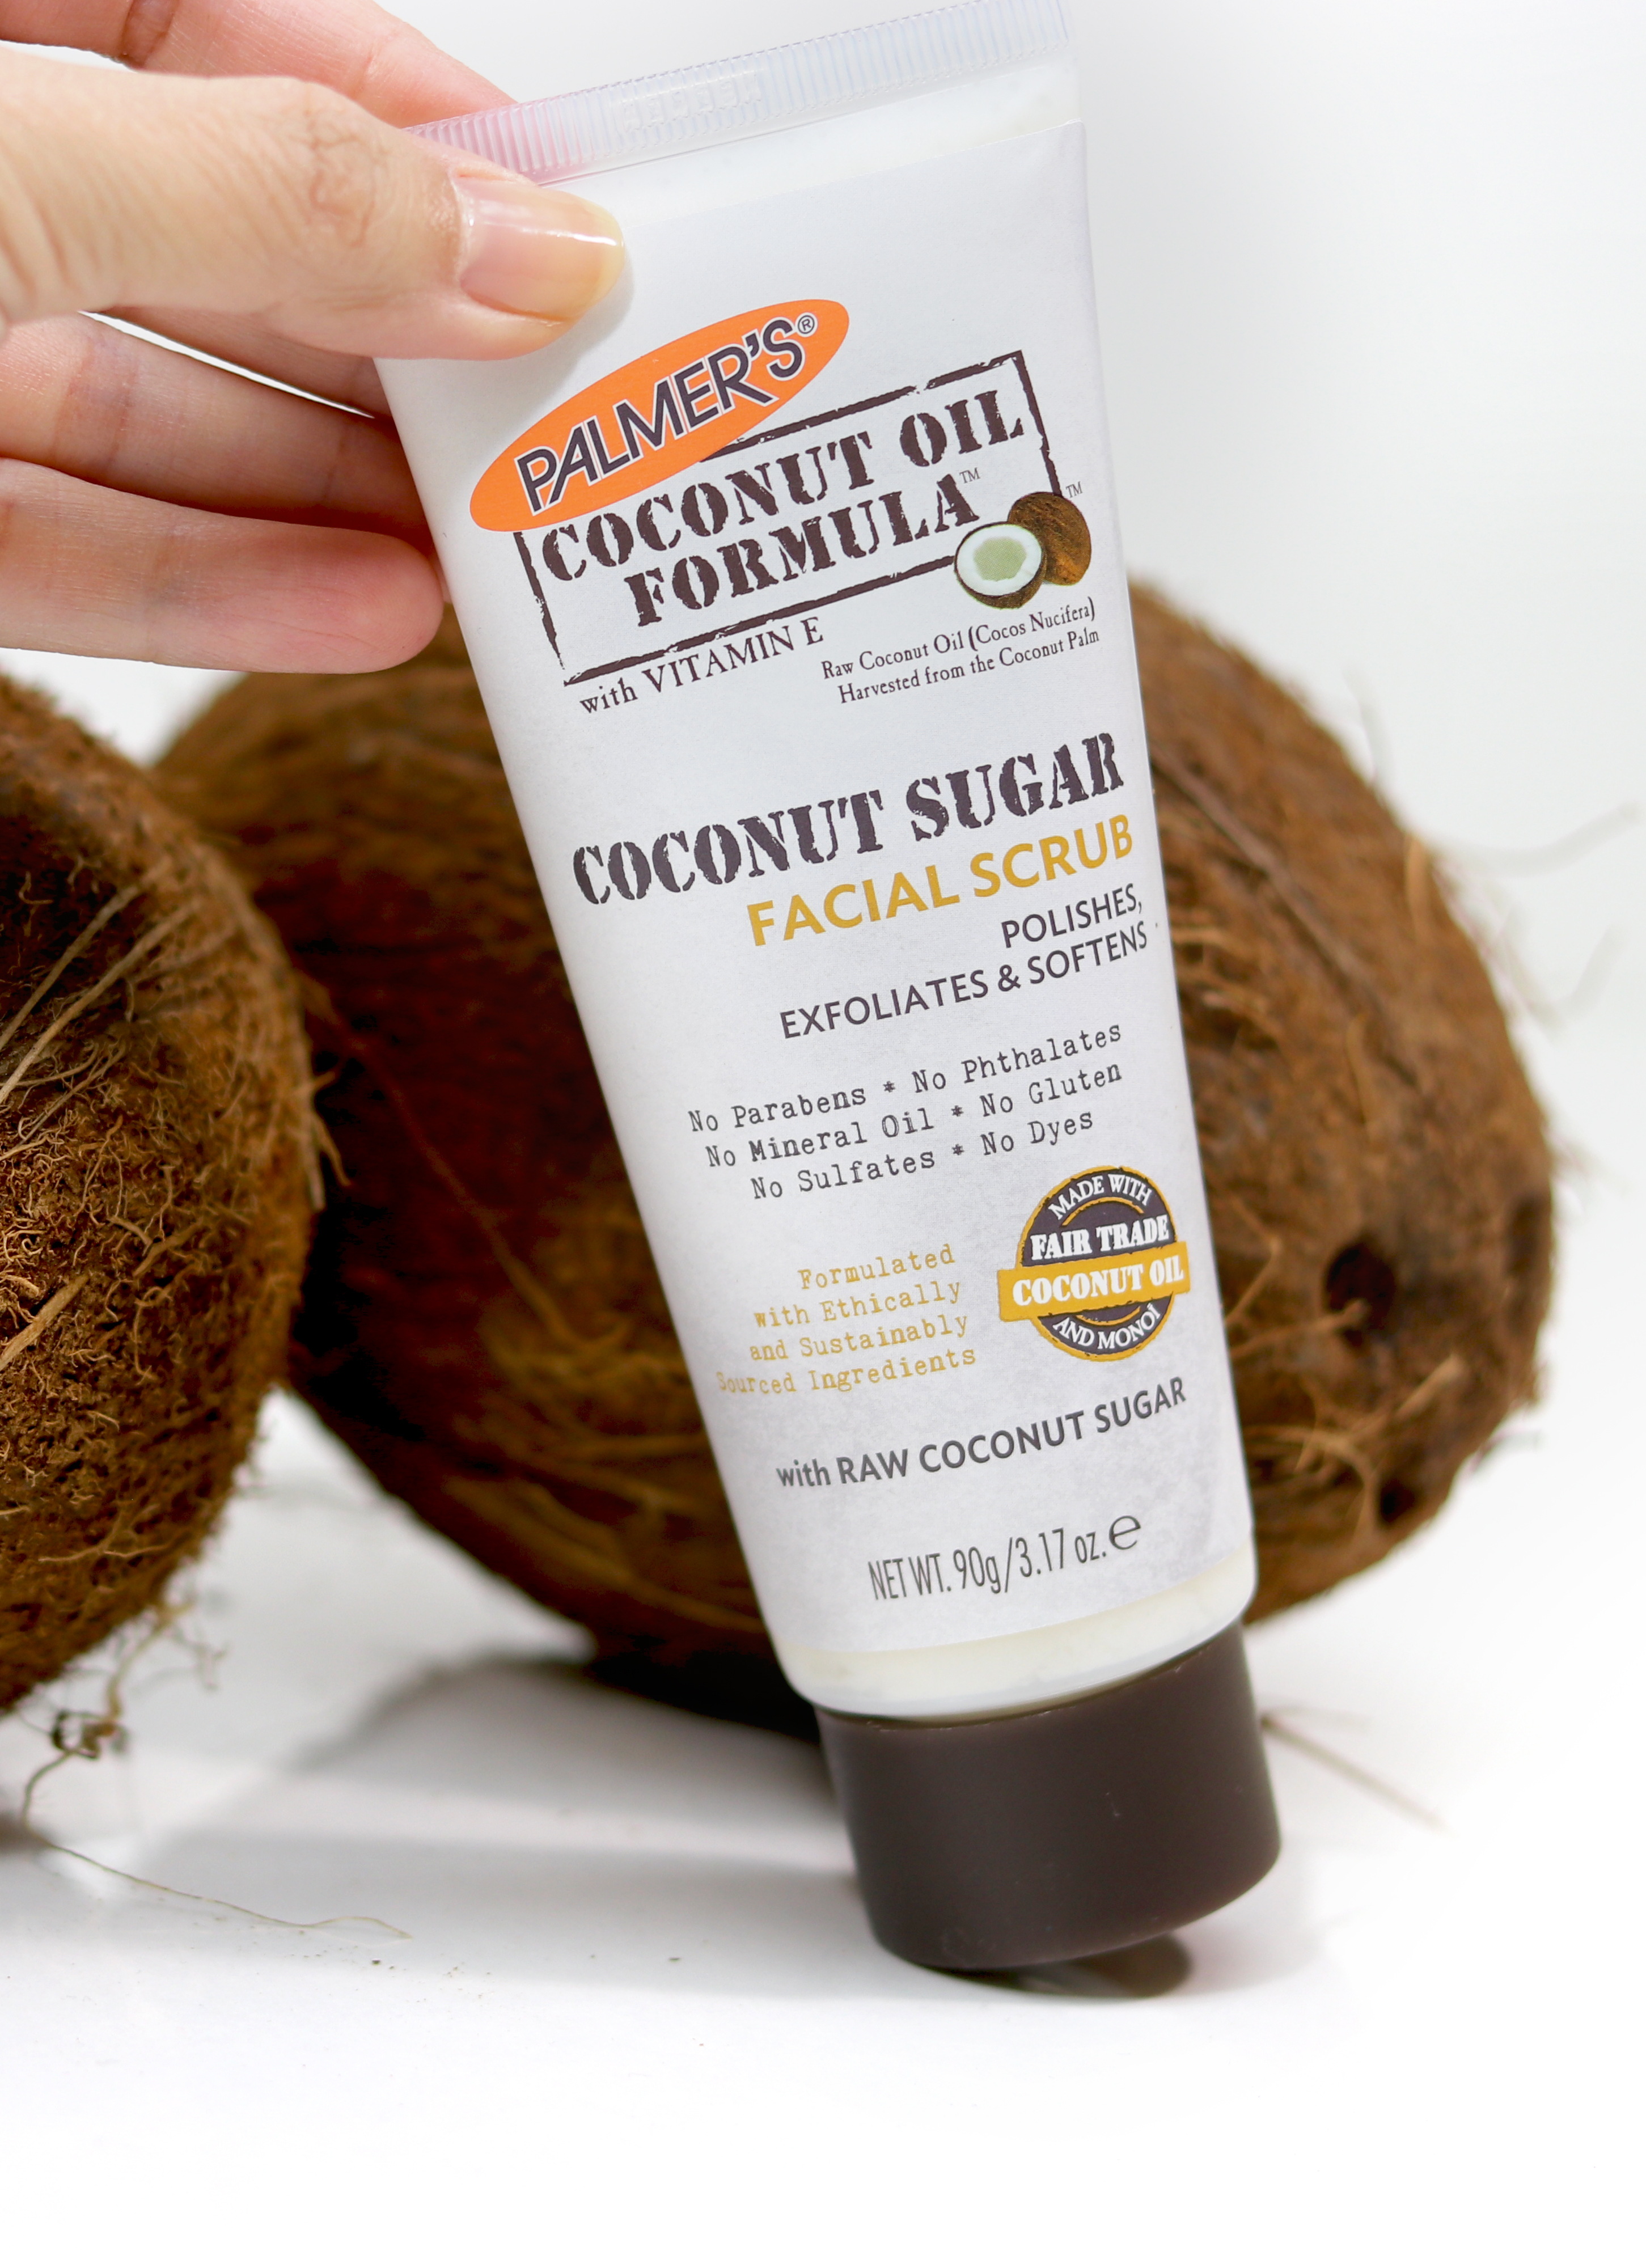 Palmer's Coconut Oil Formula Coconut Sugar Facial Scrub